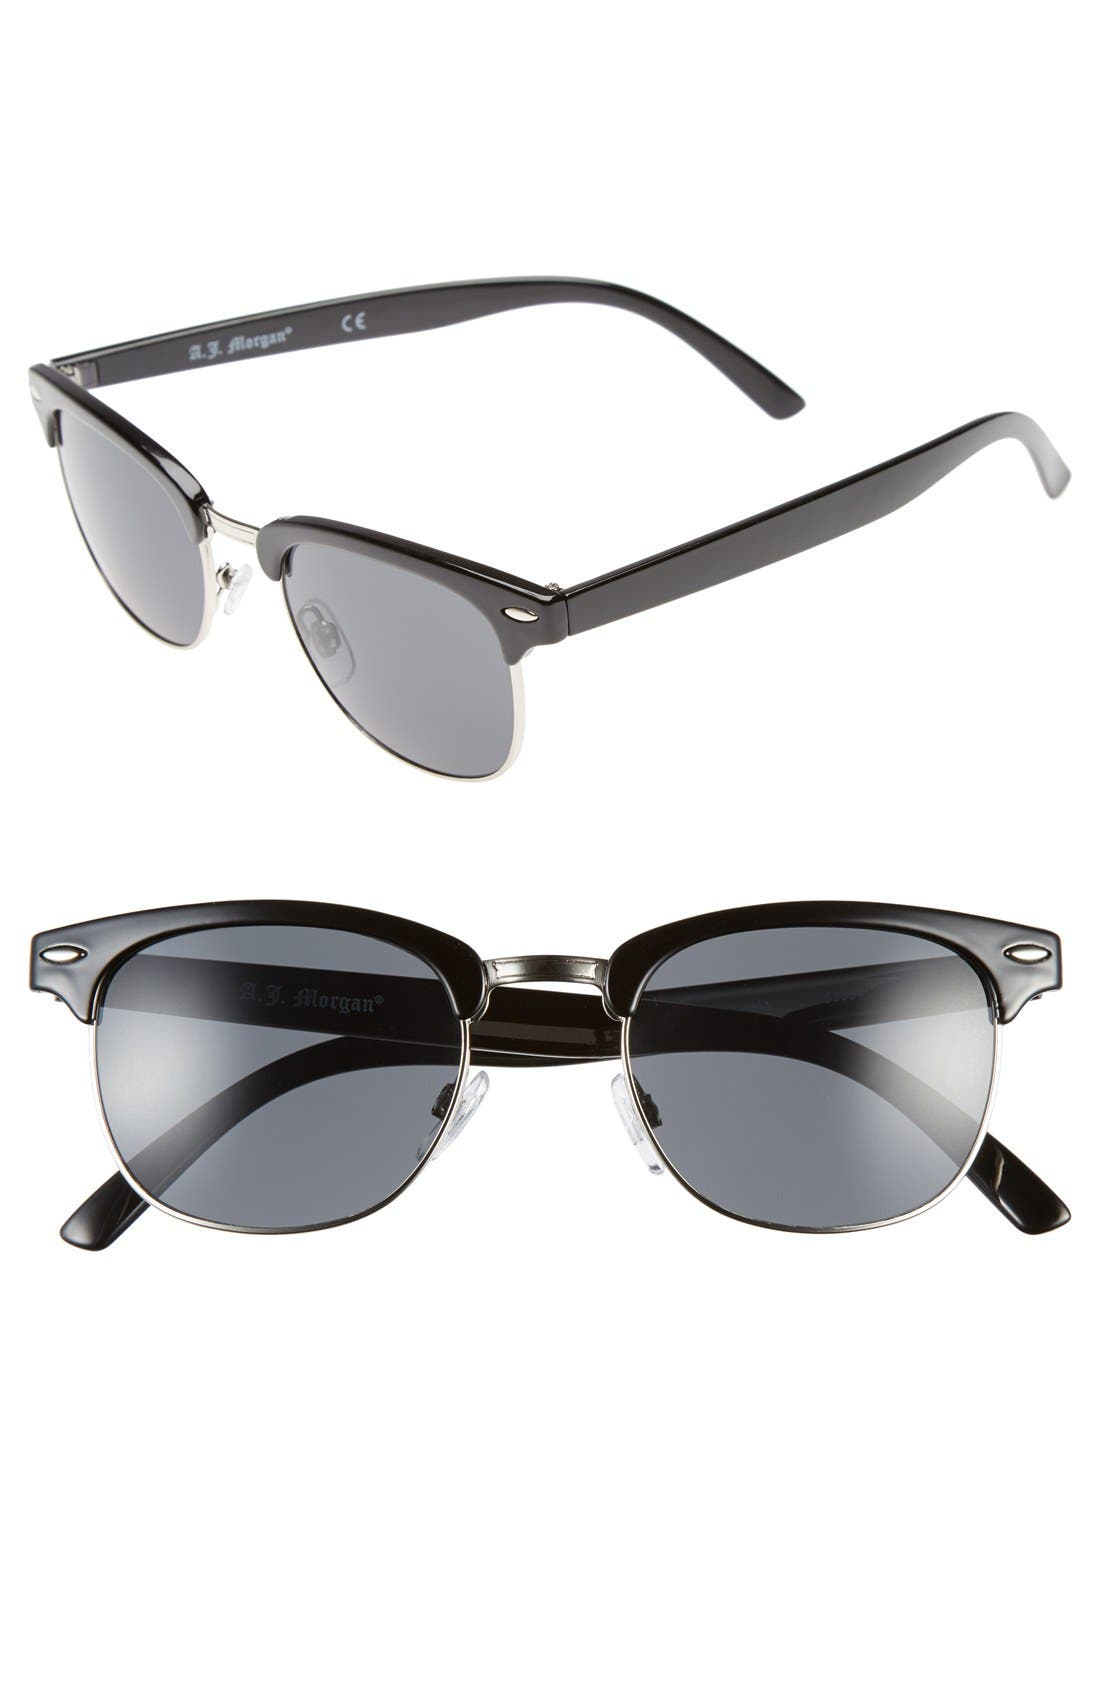 A.J. MORGAN 52mm 'Soho' Sunglasses